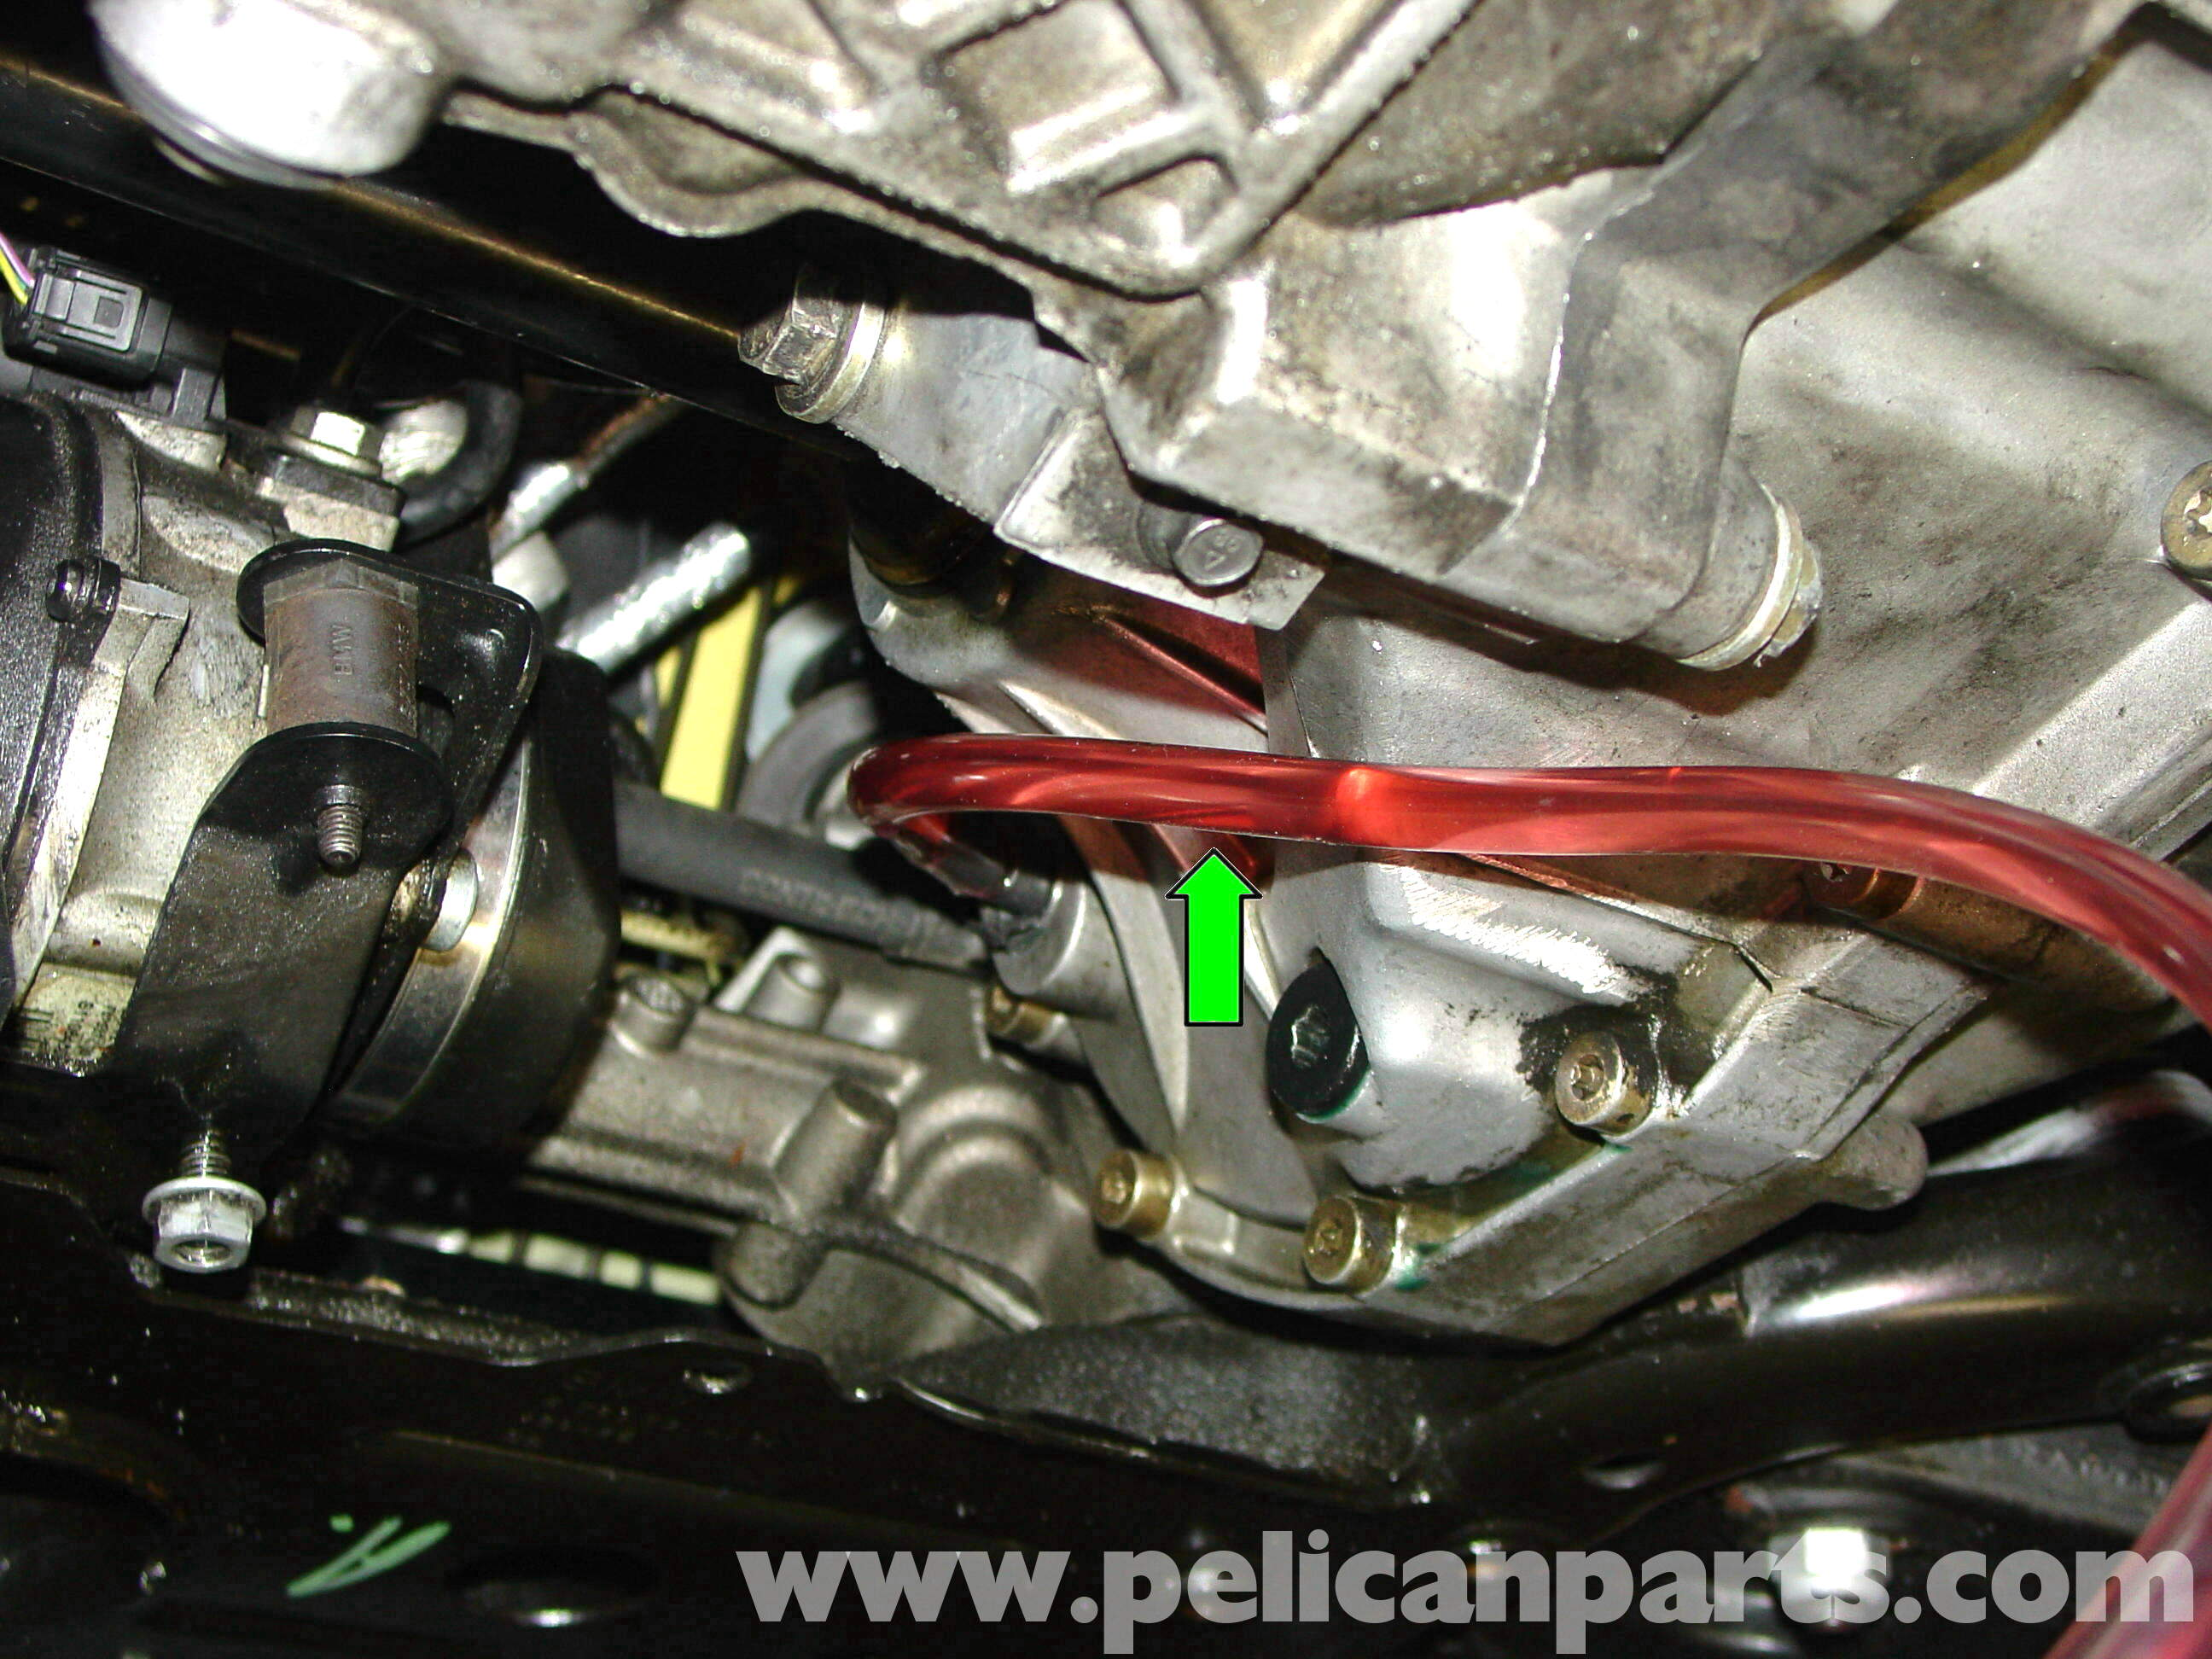 Pelican Technical Article  Transmission Oil Change -